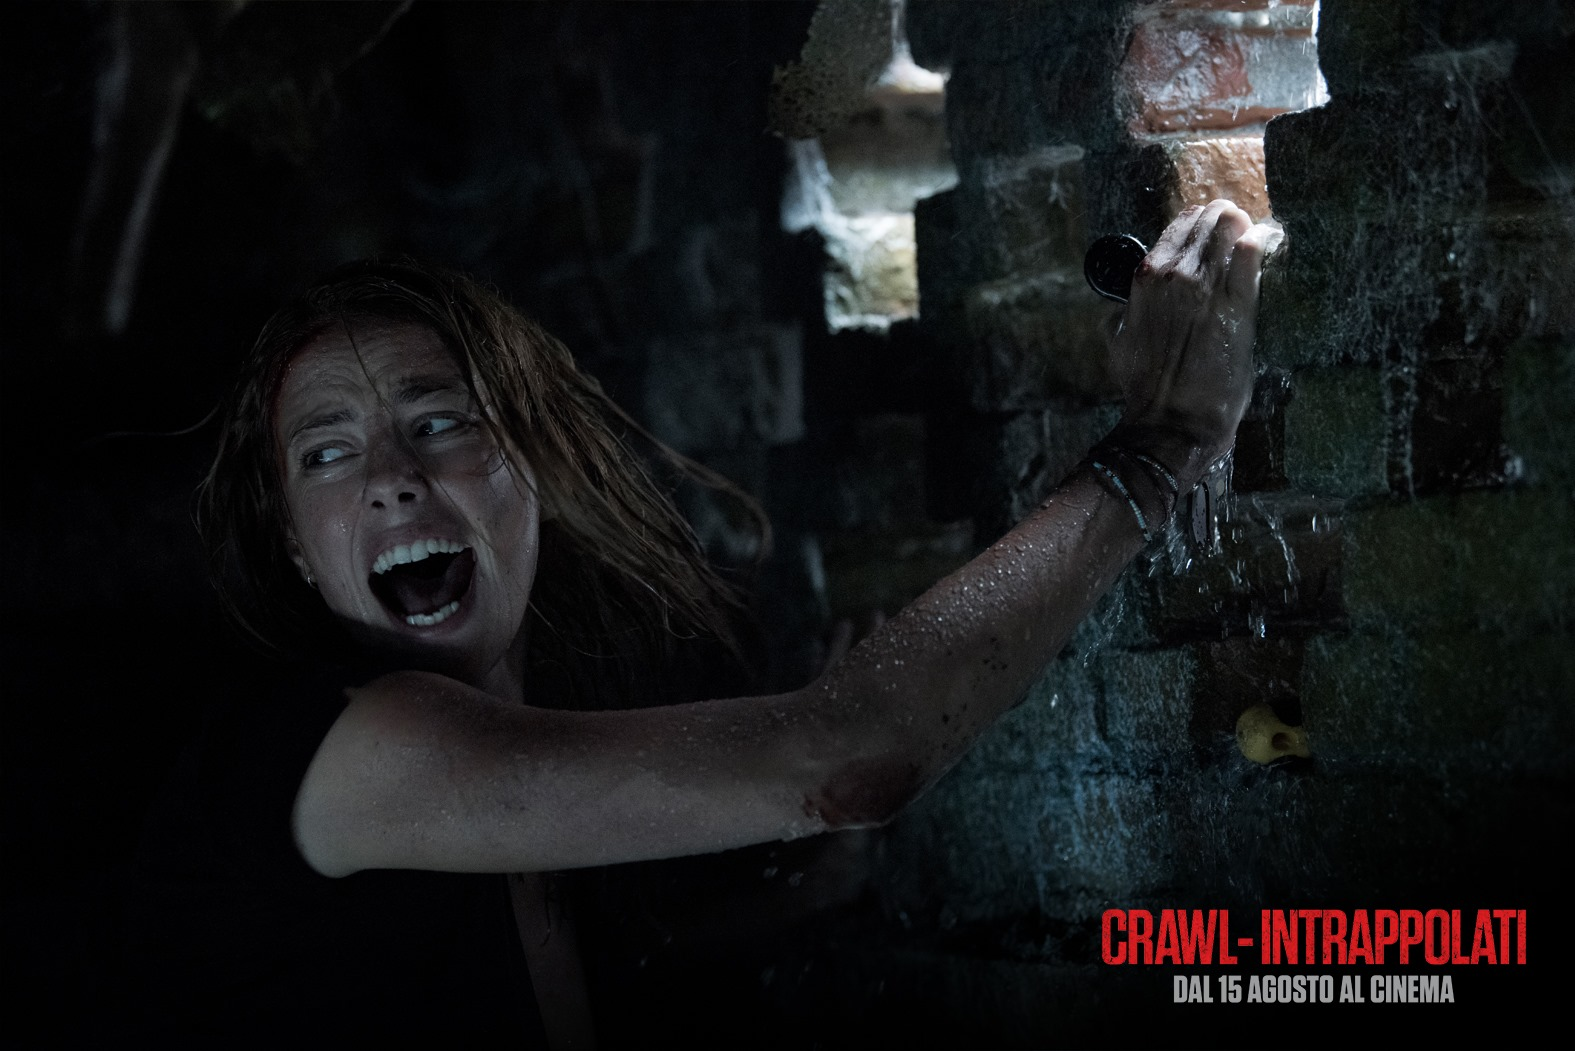 Crawl - Intrappolati | Immagine dal film